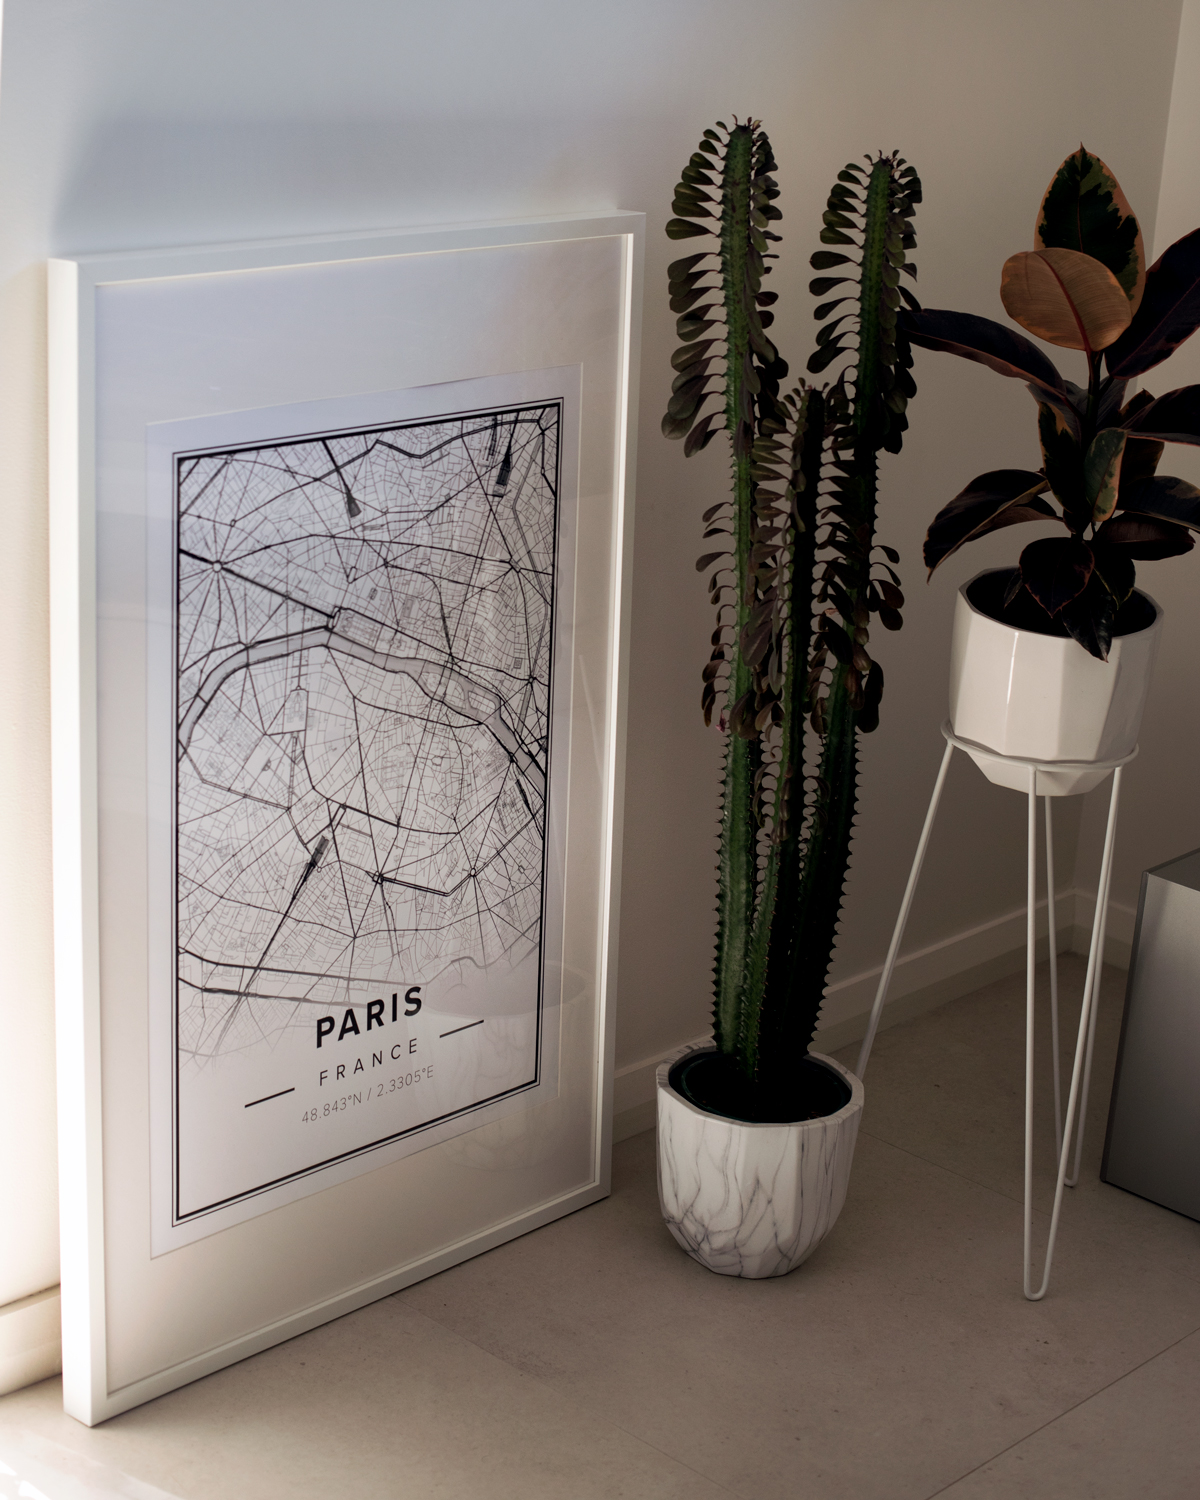 2018 Christmas gift guide Inspiring Wit blog featuring women's and lifestyle gift ideas Mapiful personalised map of Paris